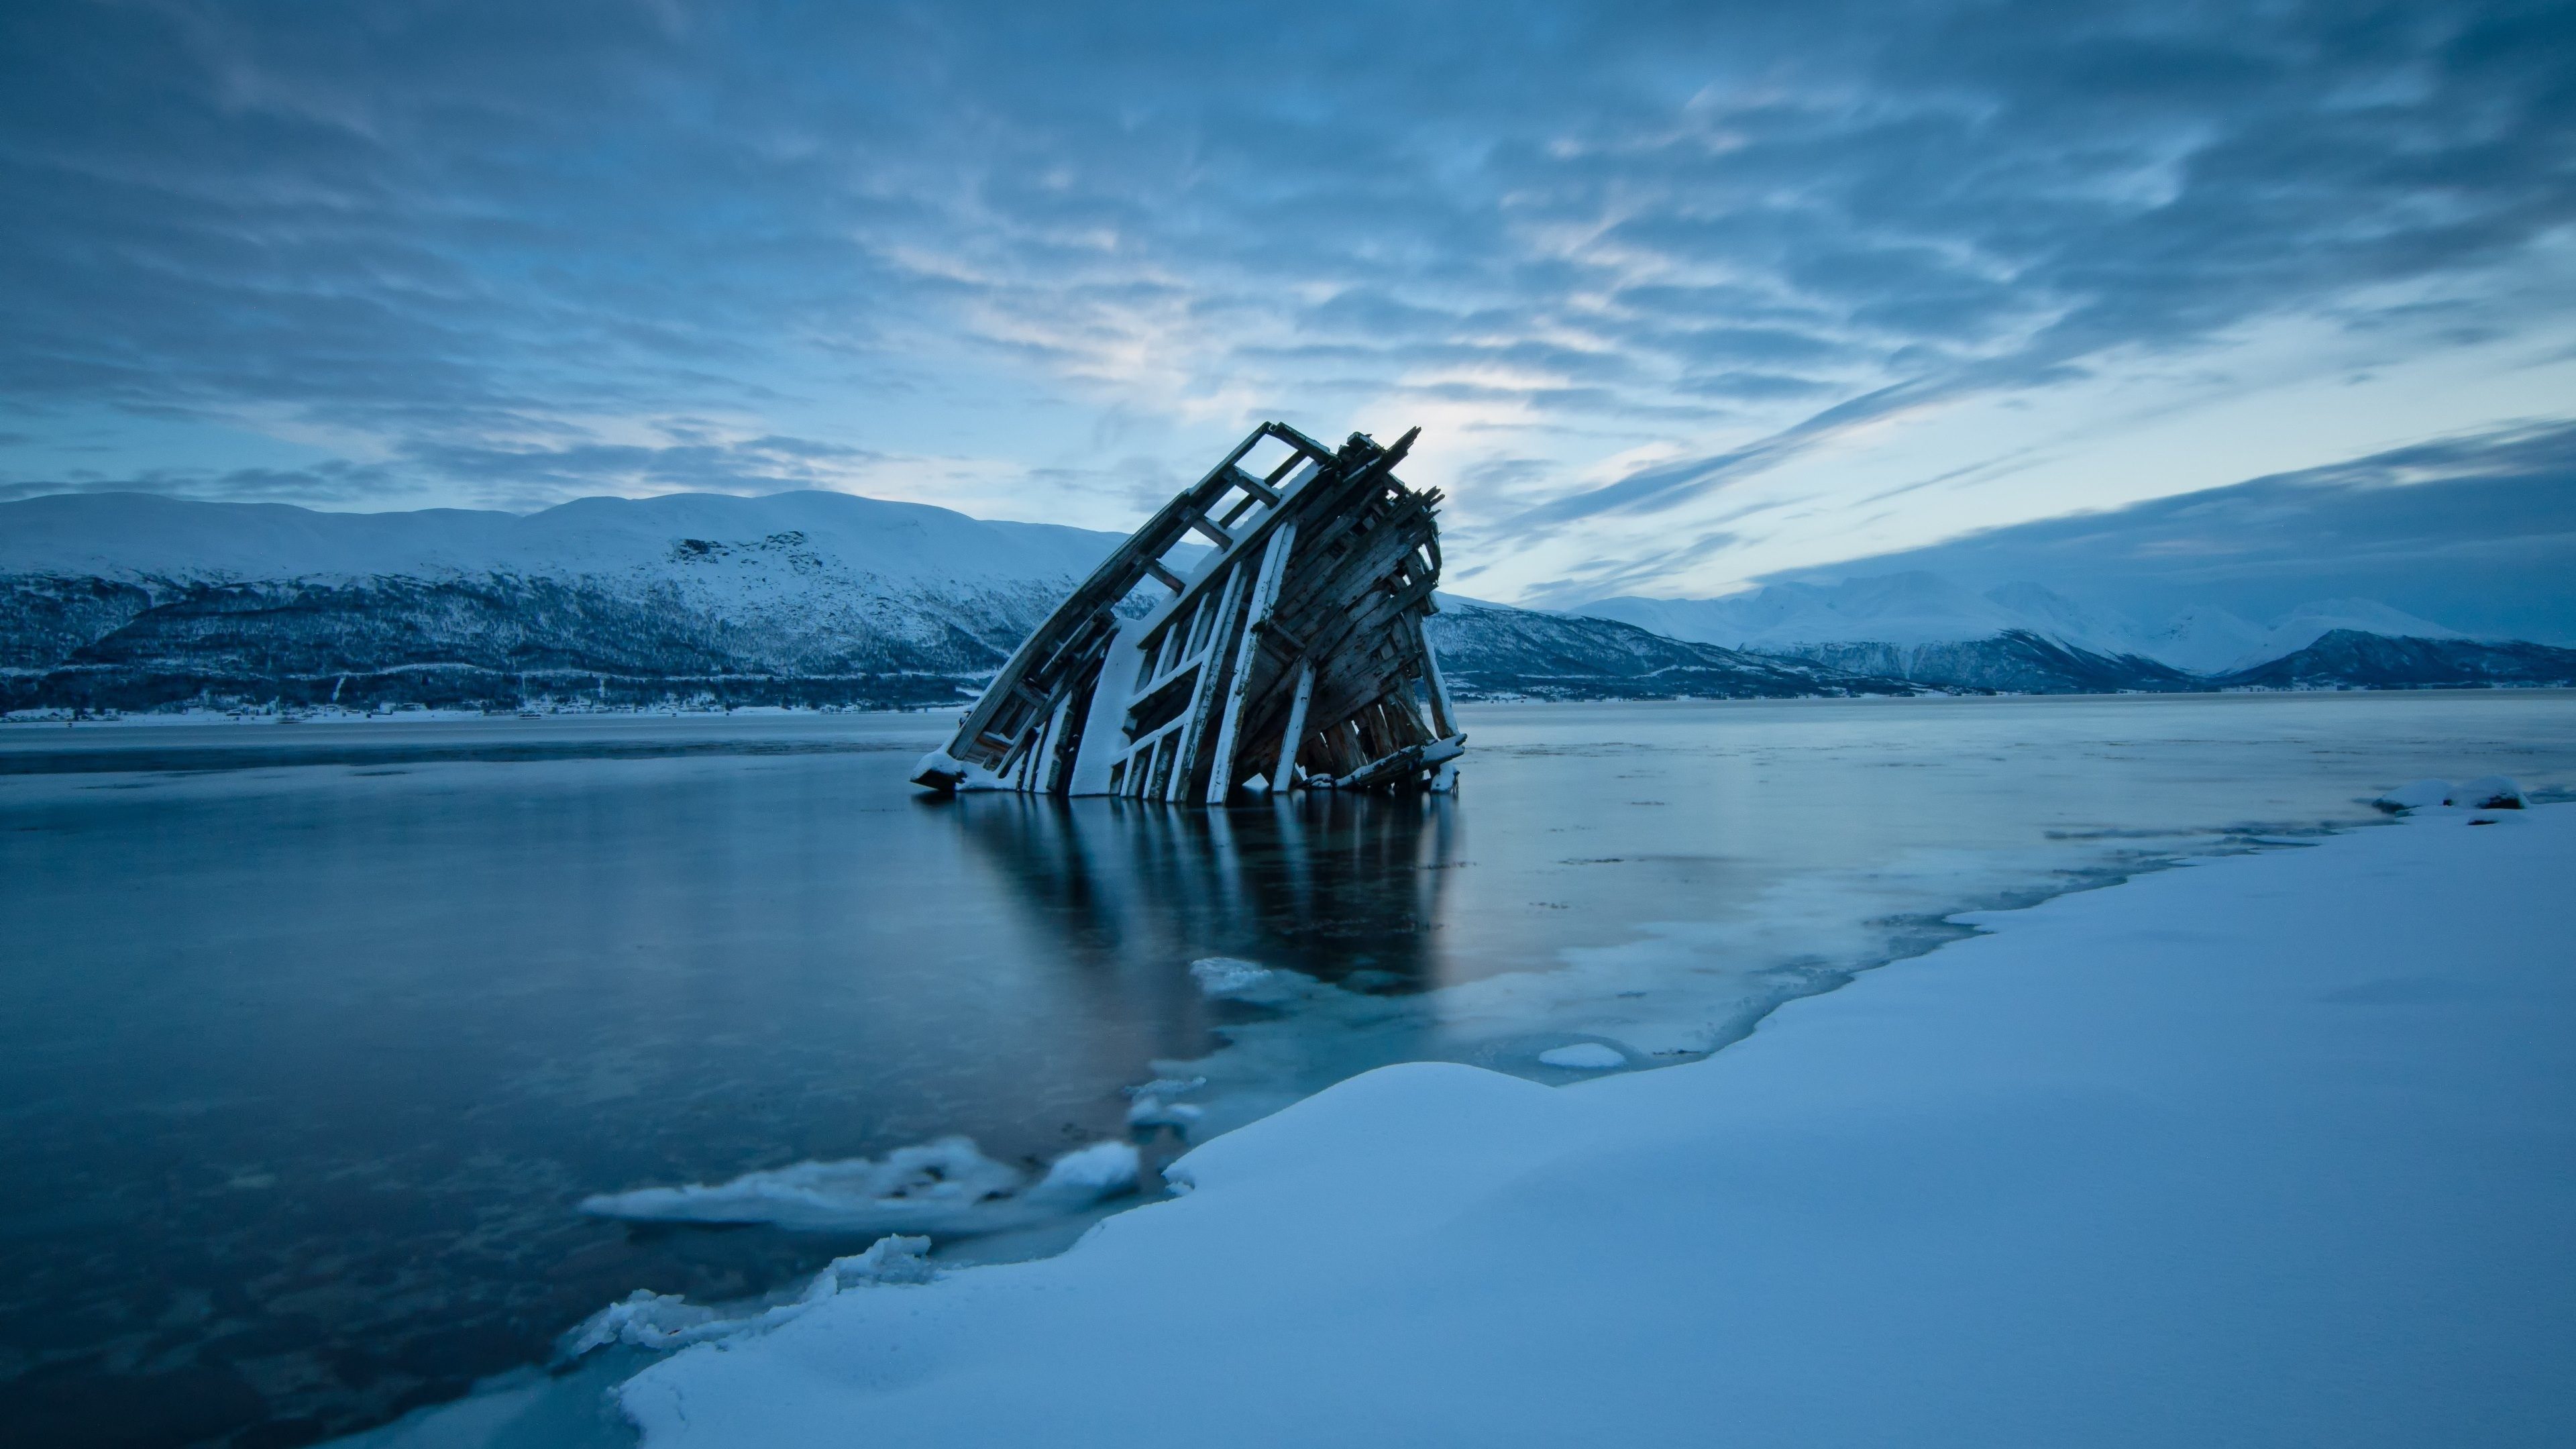 Res: 3840x2160, #frozen river, #water, #wood planks, #Norway, #nature, #evening, #clouds,  #landscape, #snow, #ice, #mountains, #shipwreck, #frost, #winter, wallpaper